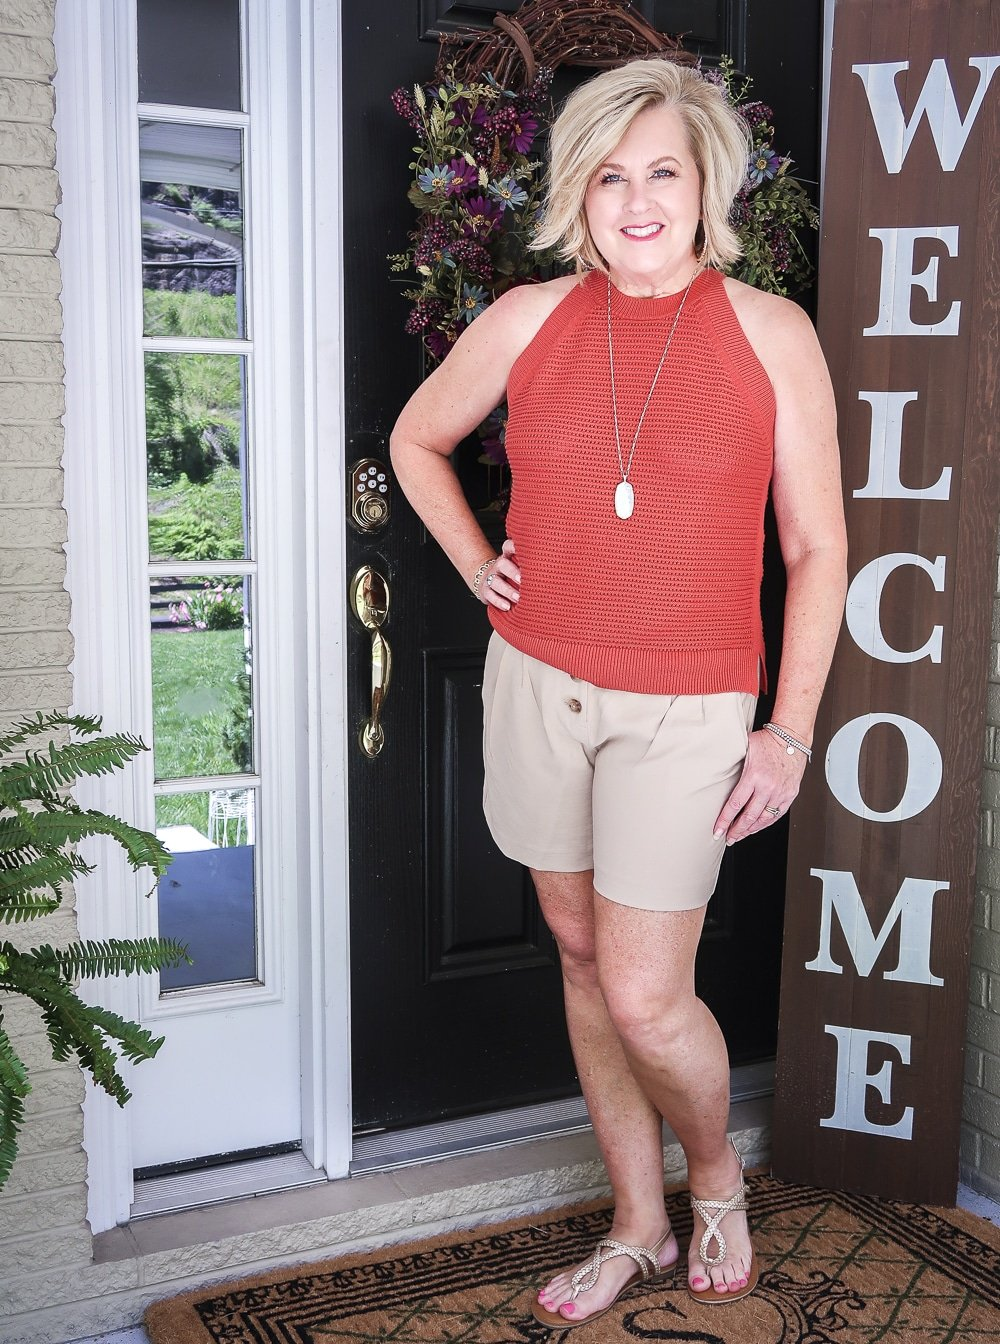 Fashion Blogger 50 Is Not Old is wearing a red clay crochet halter top, gold jewelry, linen shorts, and gold sandals